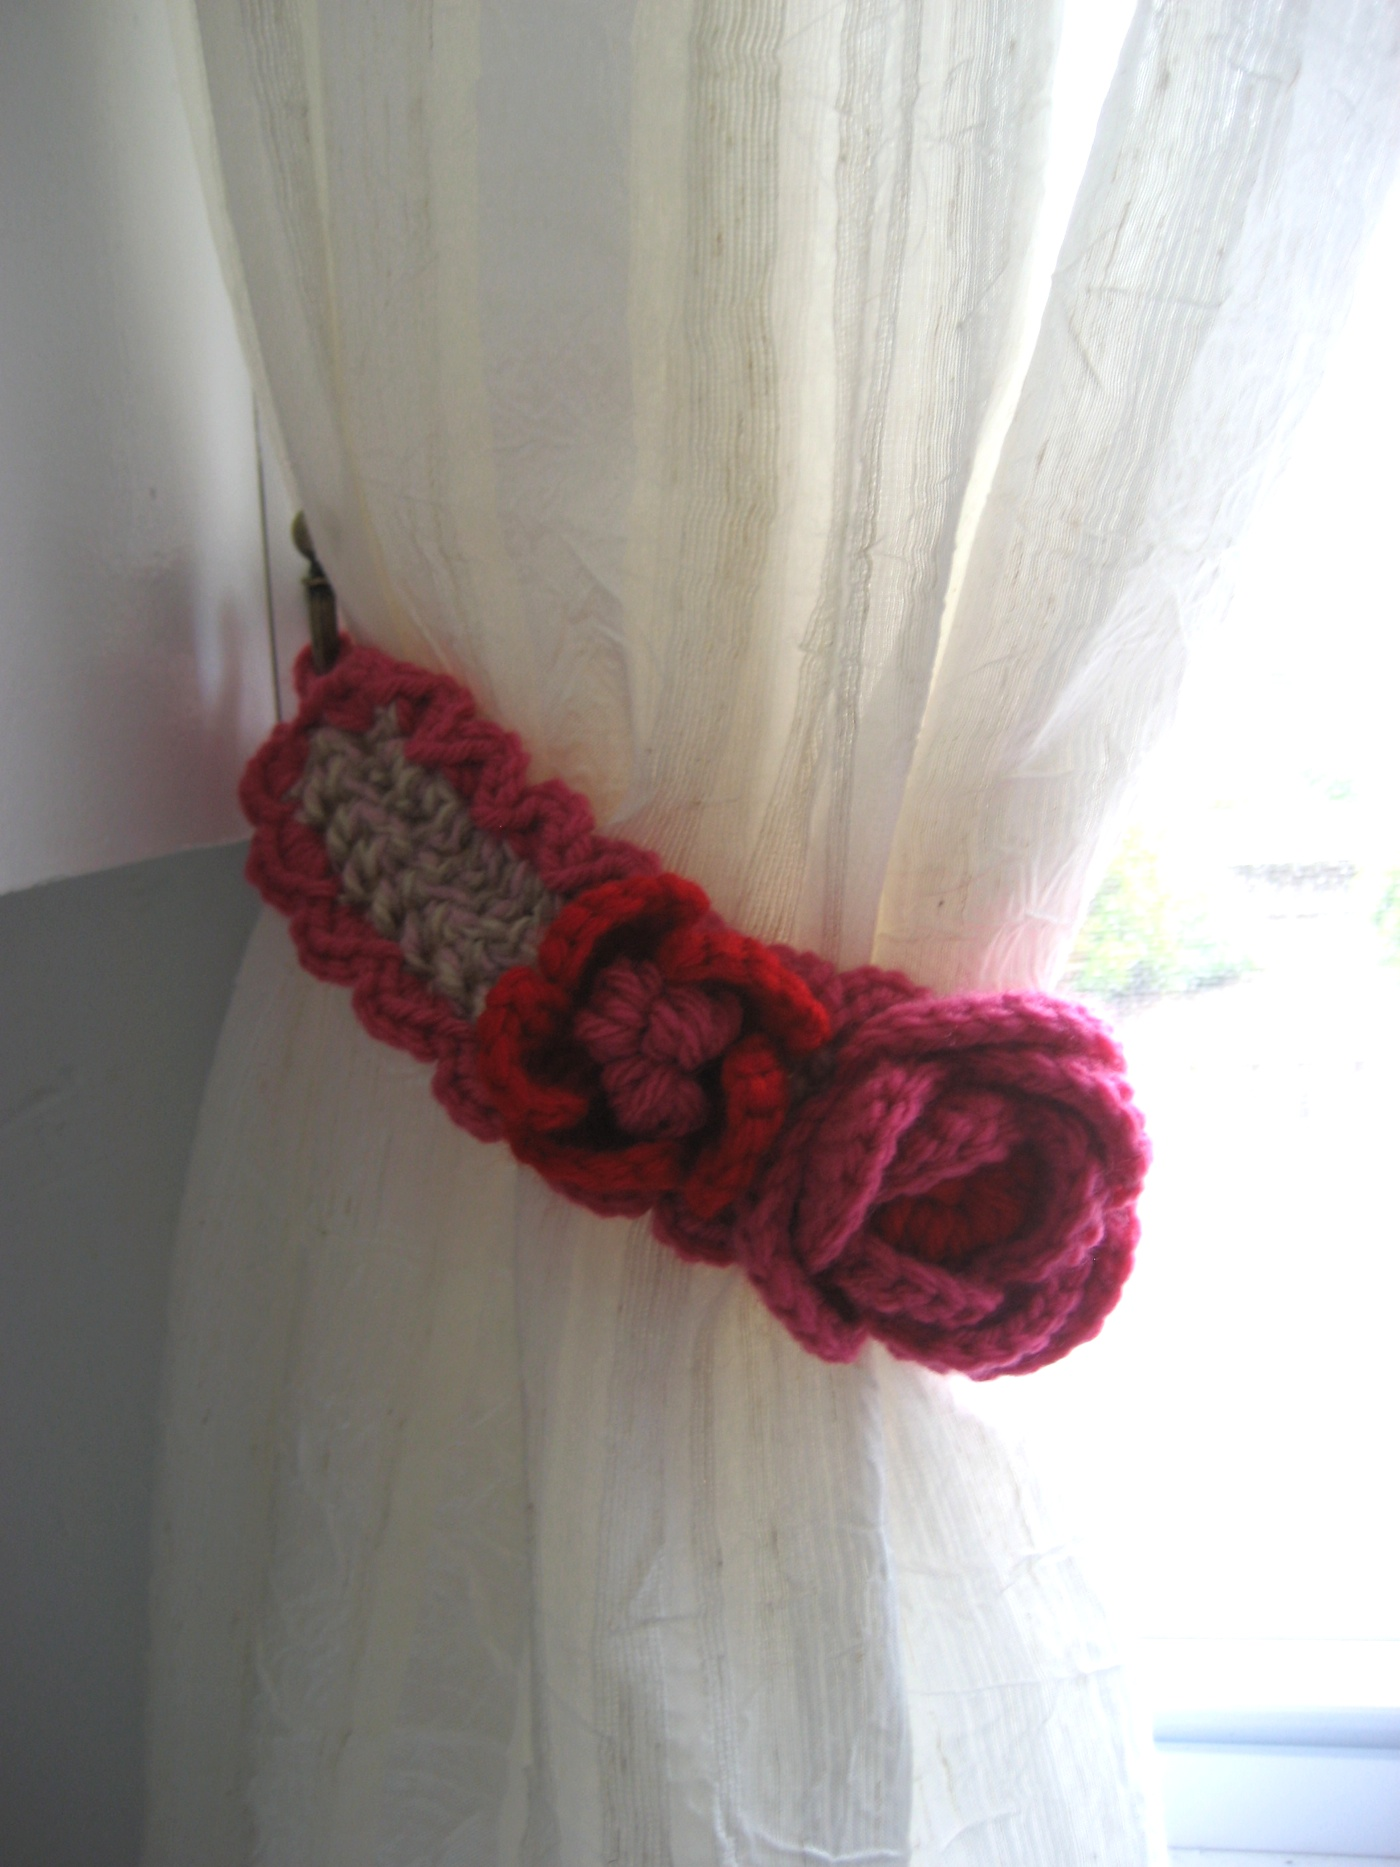 Crochet Flower Curtain Free Pattern : Kitschy Curtain Tie-Backs ? Ms Premise-Conclusion